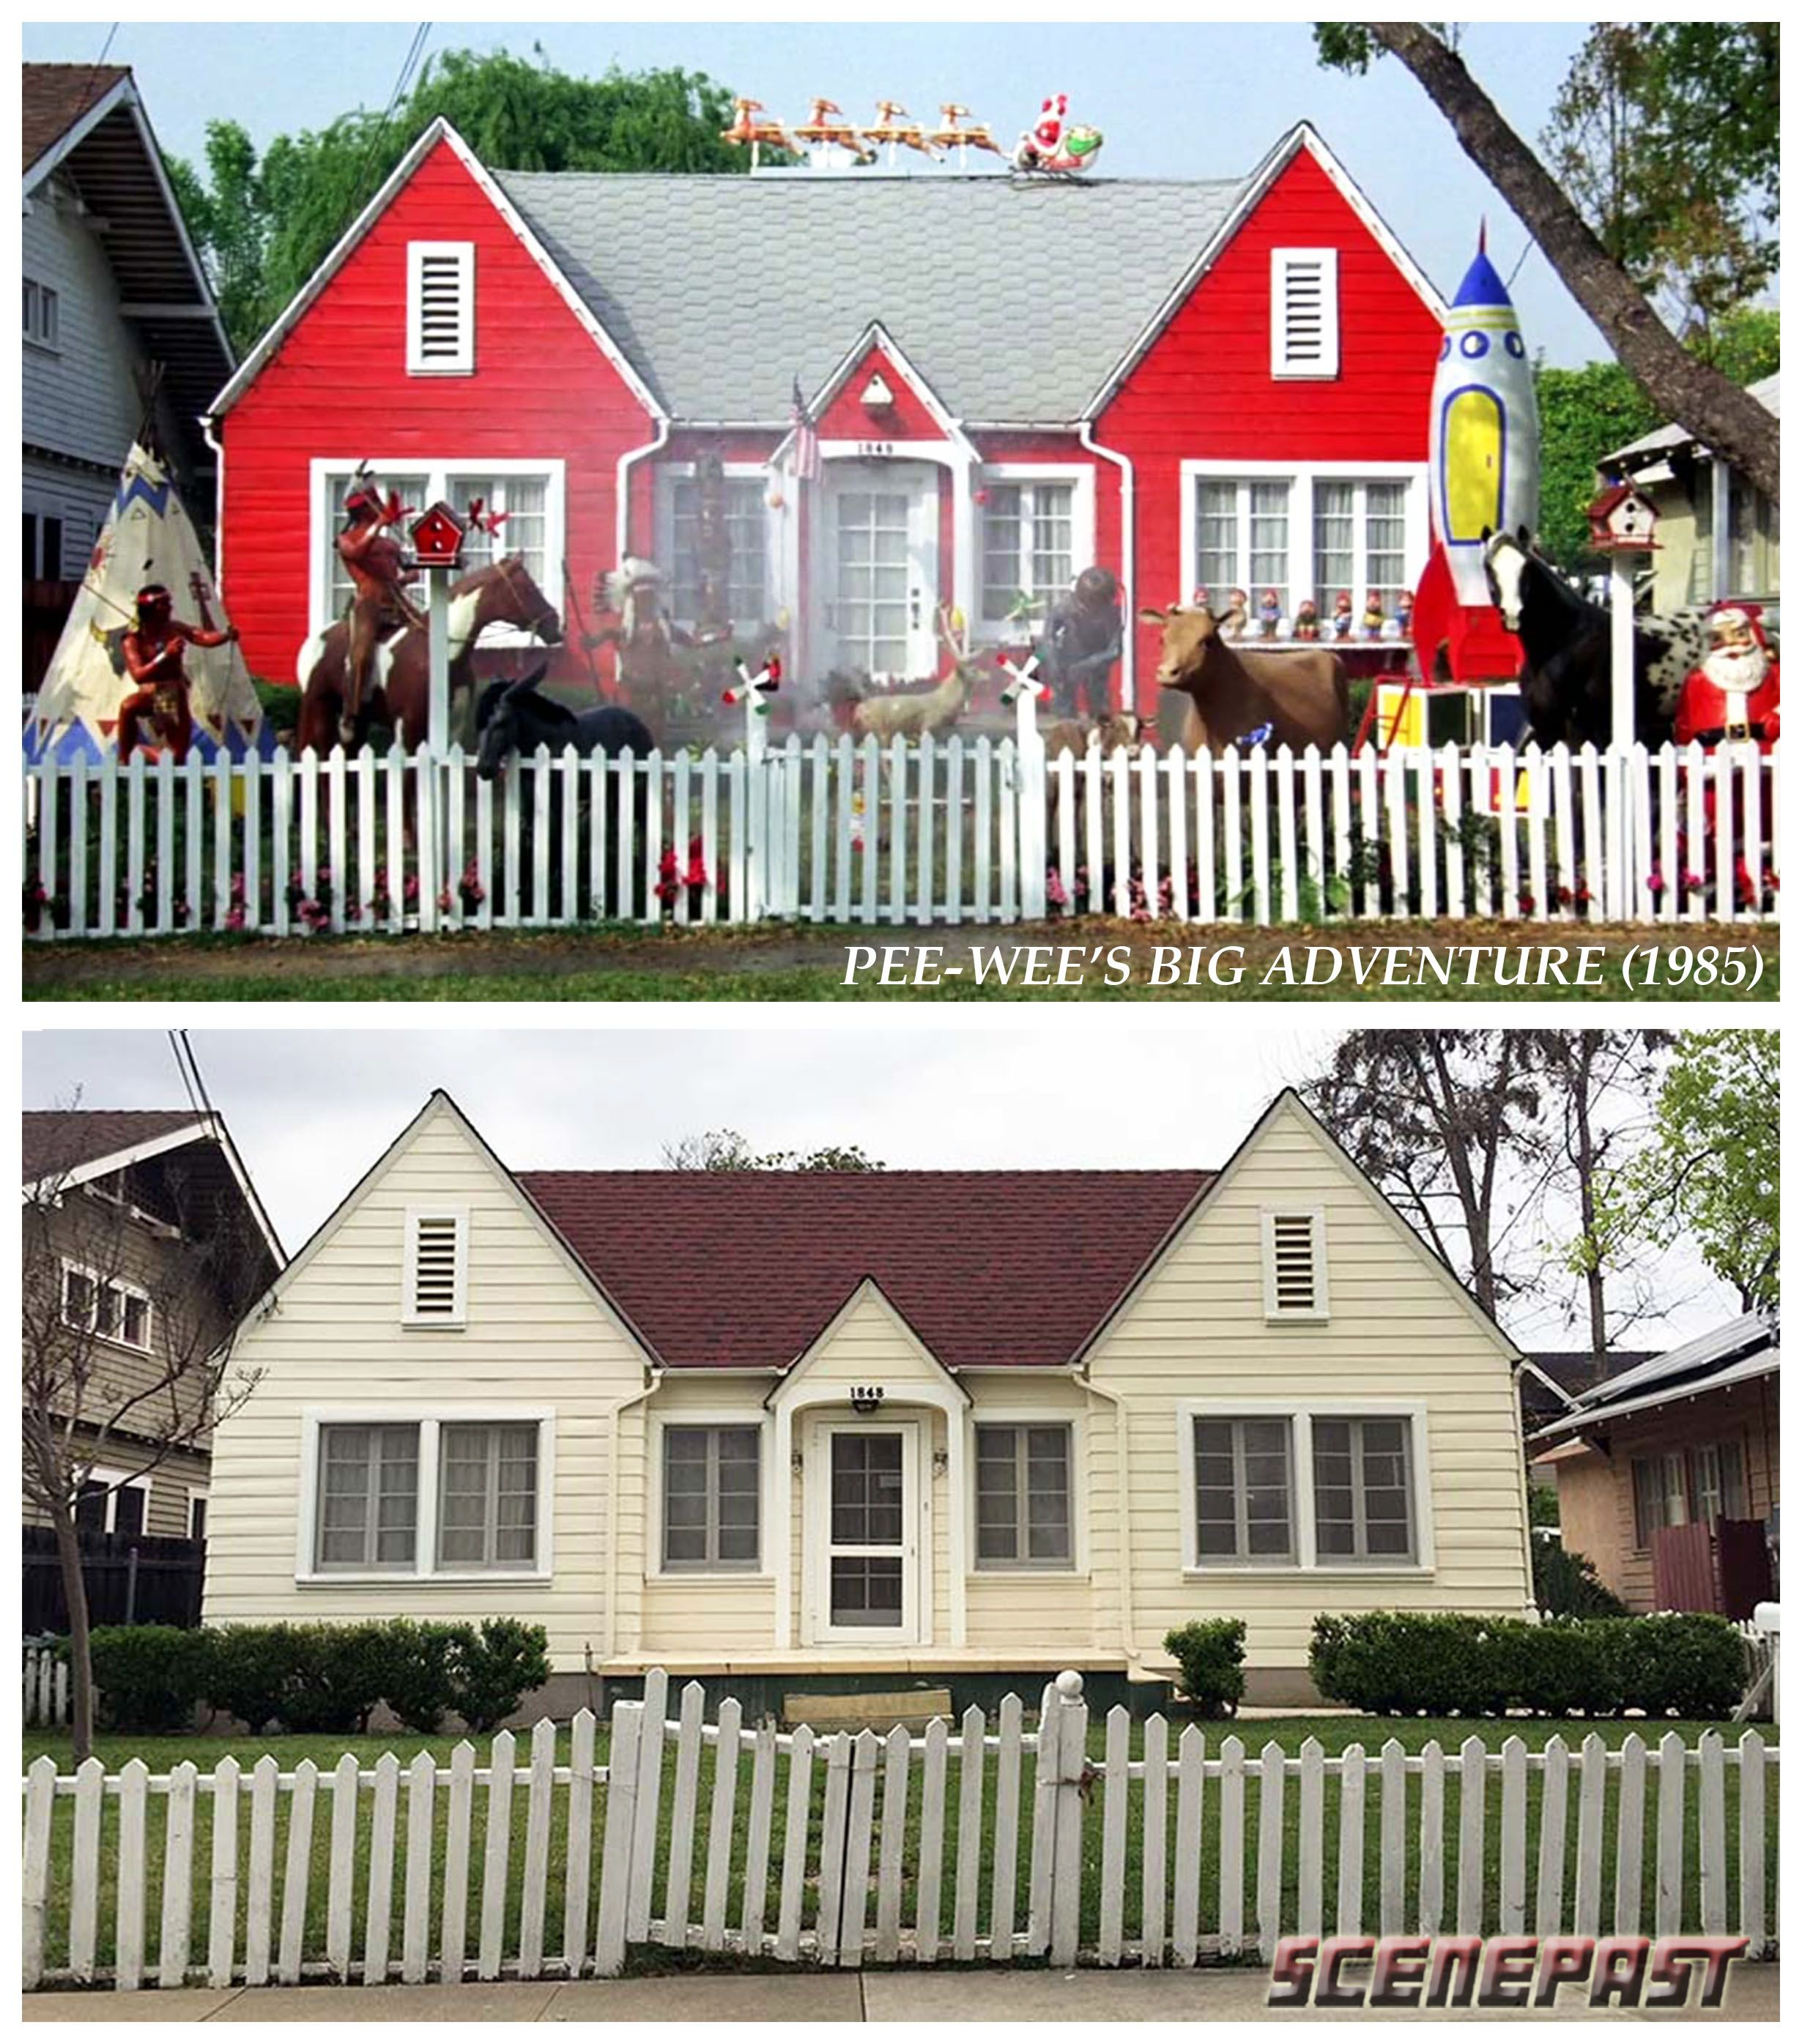 Here's a fun ScenePast then & now from the nationwide